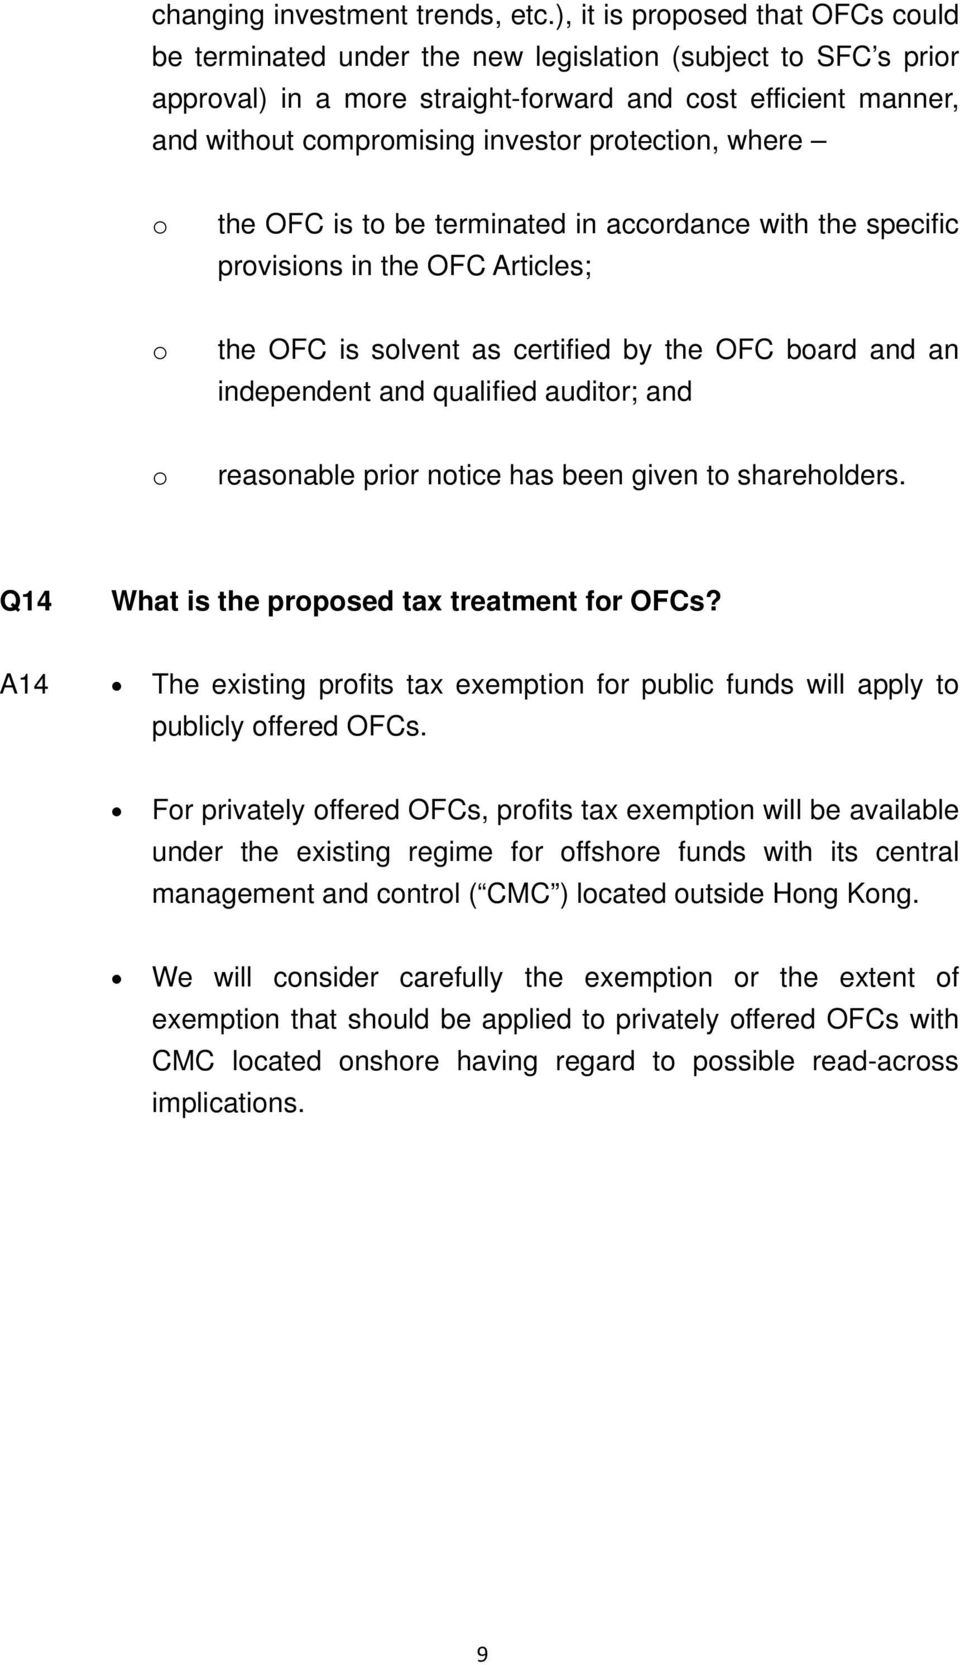 protection, where o the OFC is to be terminated in accordance with the specific provisions in the OFC Articles; o the OFC is solvent as certified by the OFC board and an independent and qualified